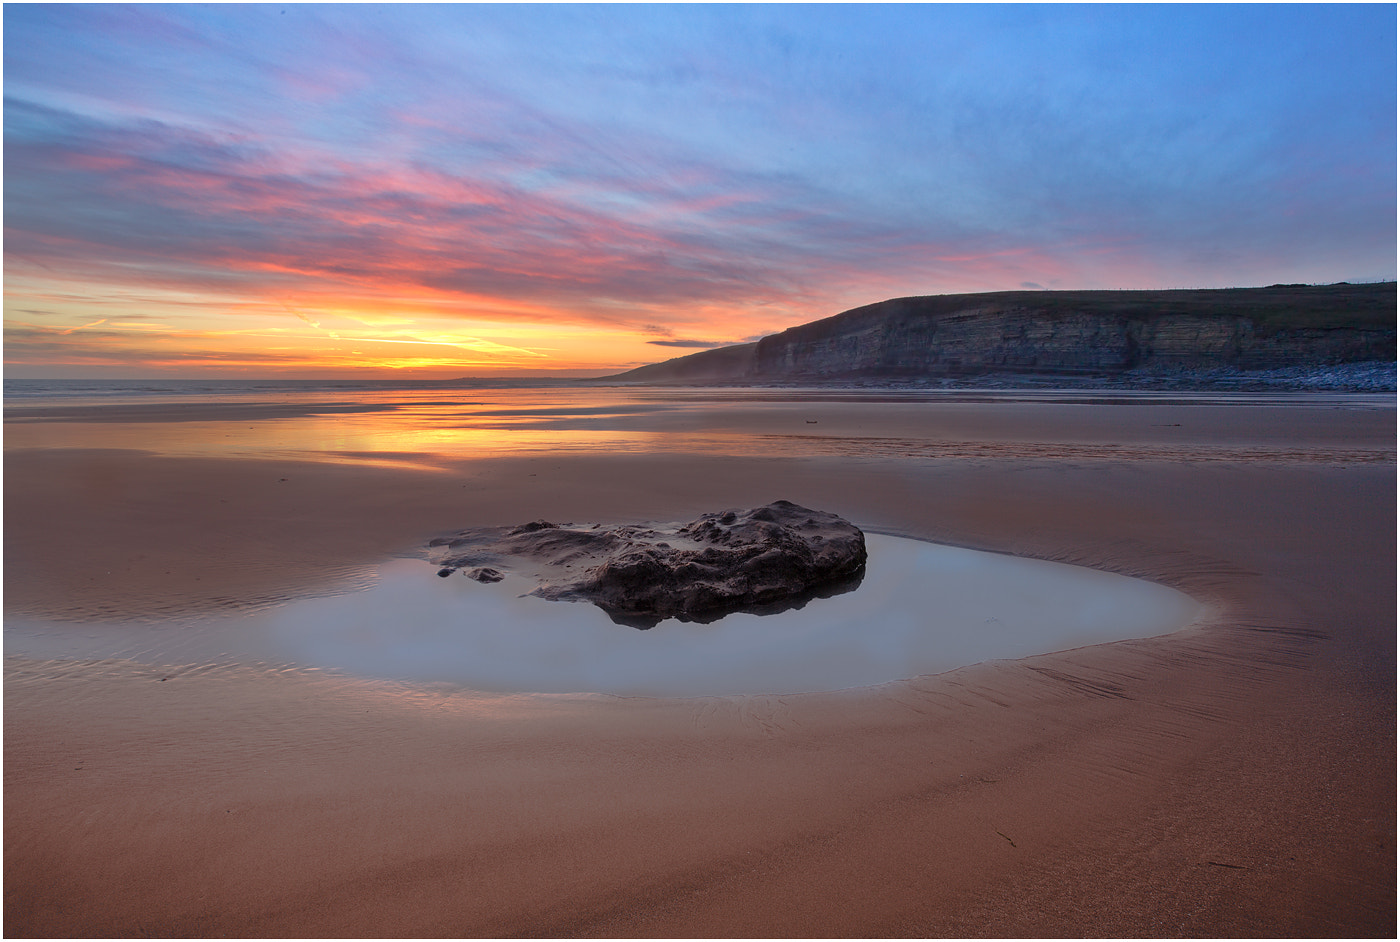 Photograph The Rock by Alan Coles on 500px